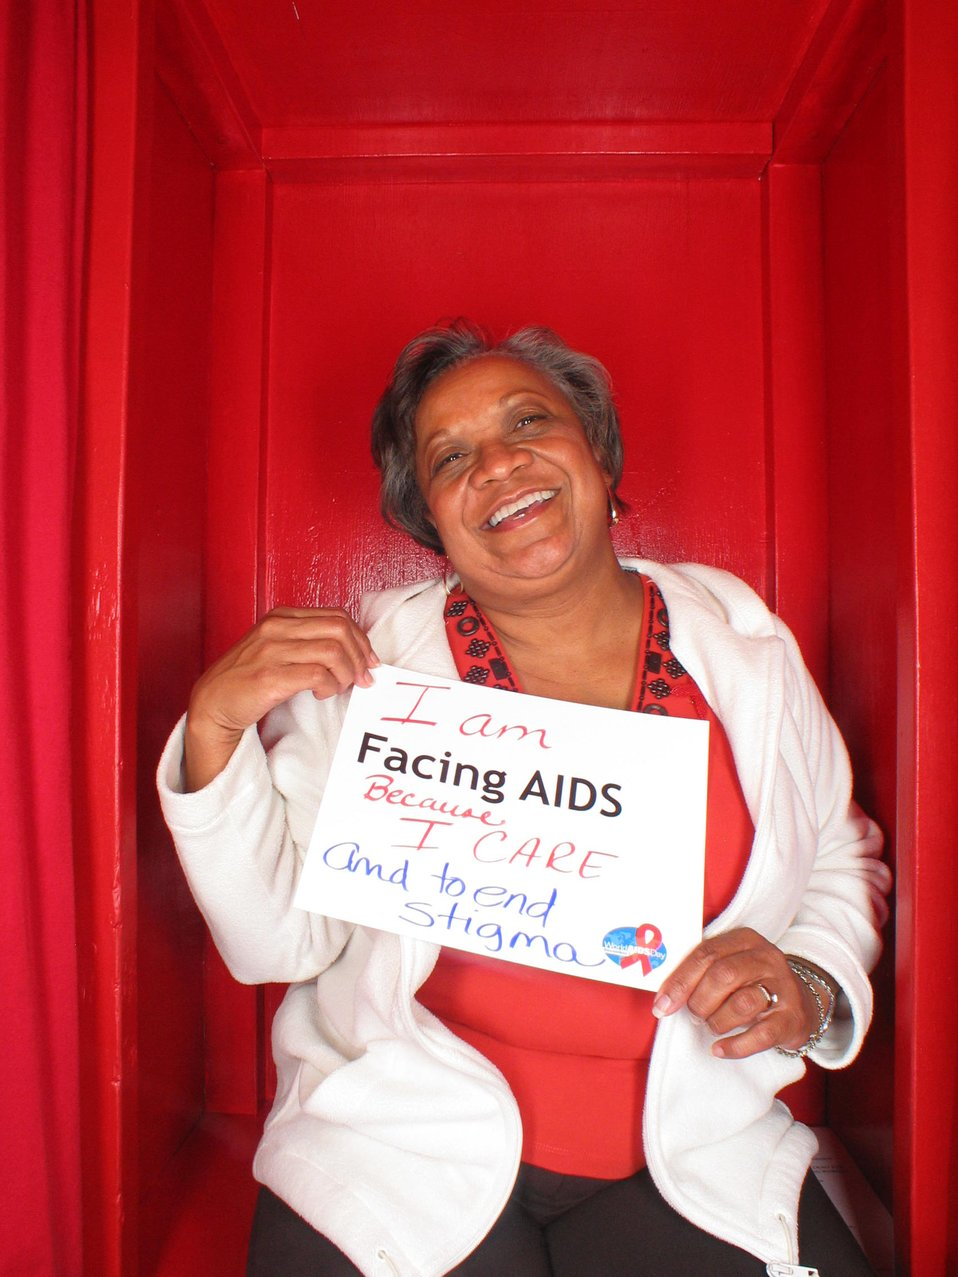 I am Facing AIDS because I care and to end stigma